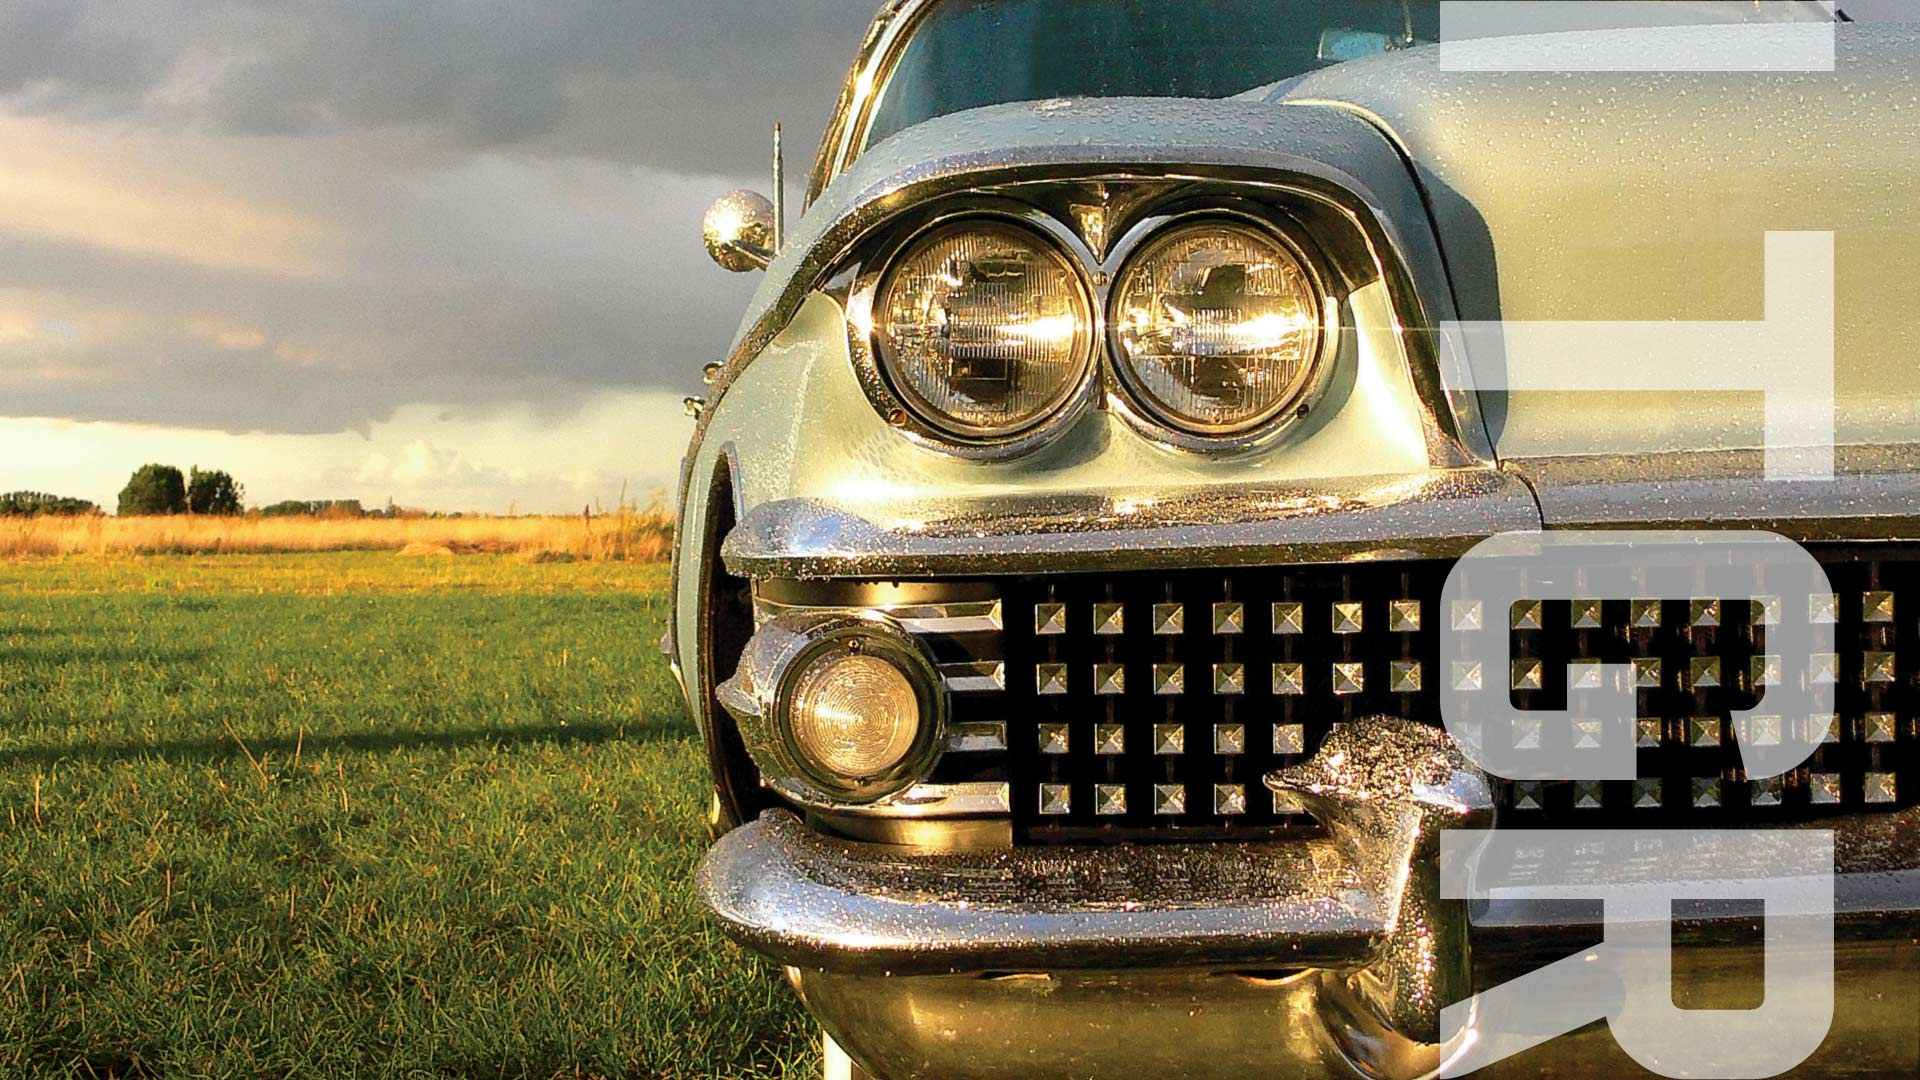 DVLA Auction website cover image showing the front of a car in field